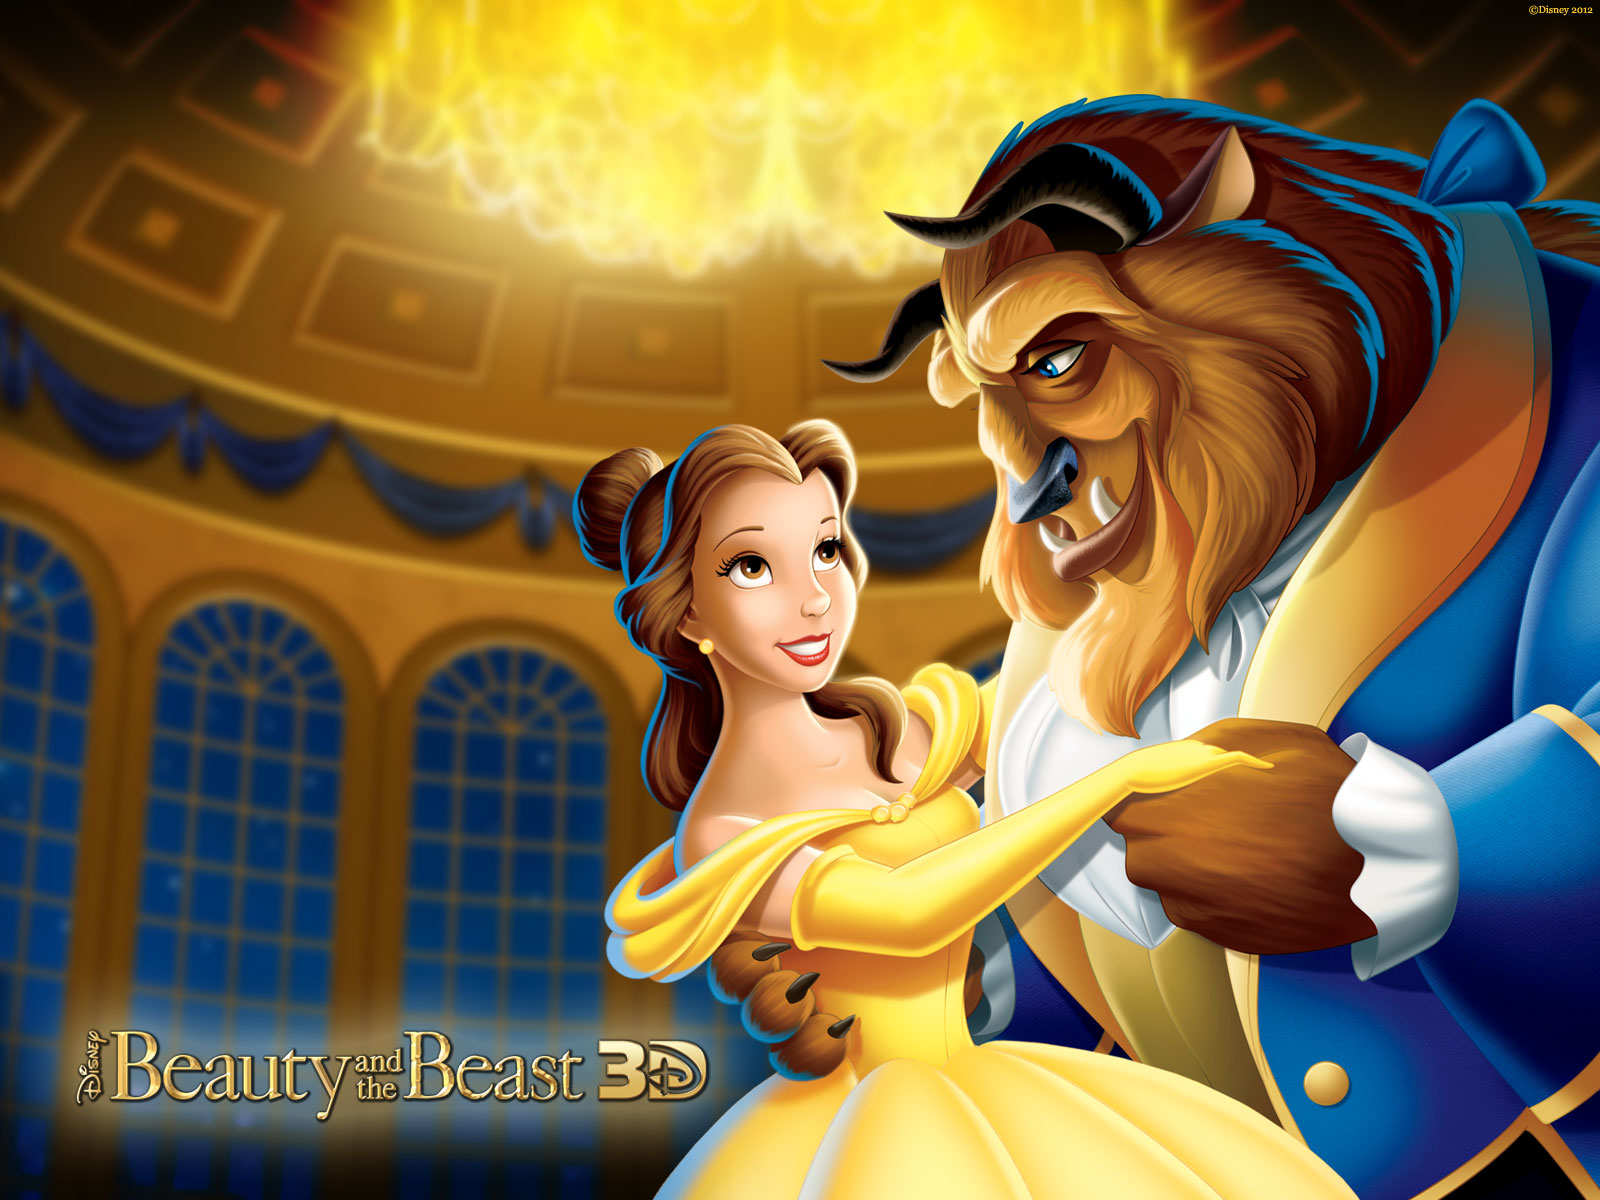 Disney Hd Wallpapers Beauty And The Beast Hd Wallpapers